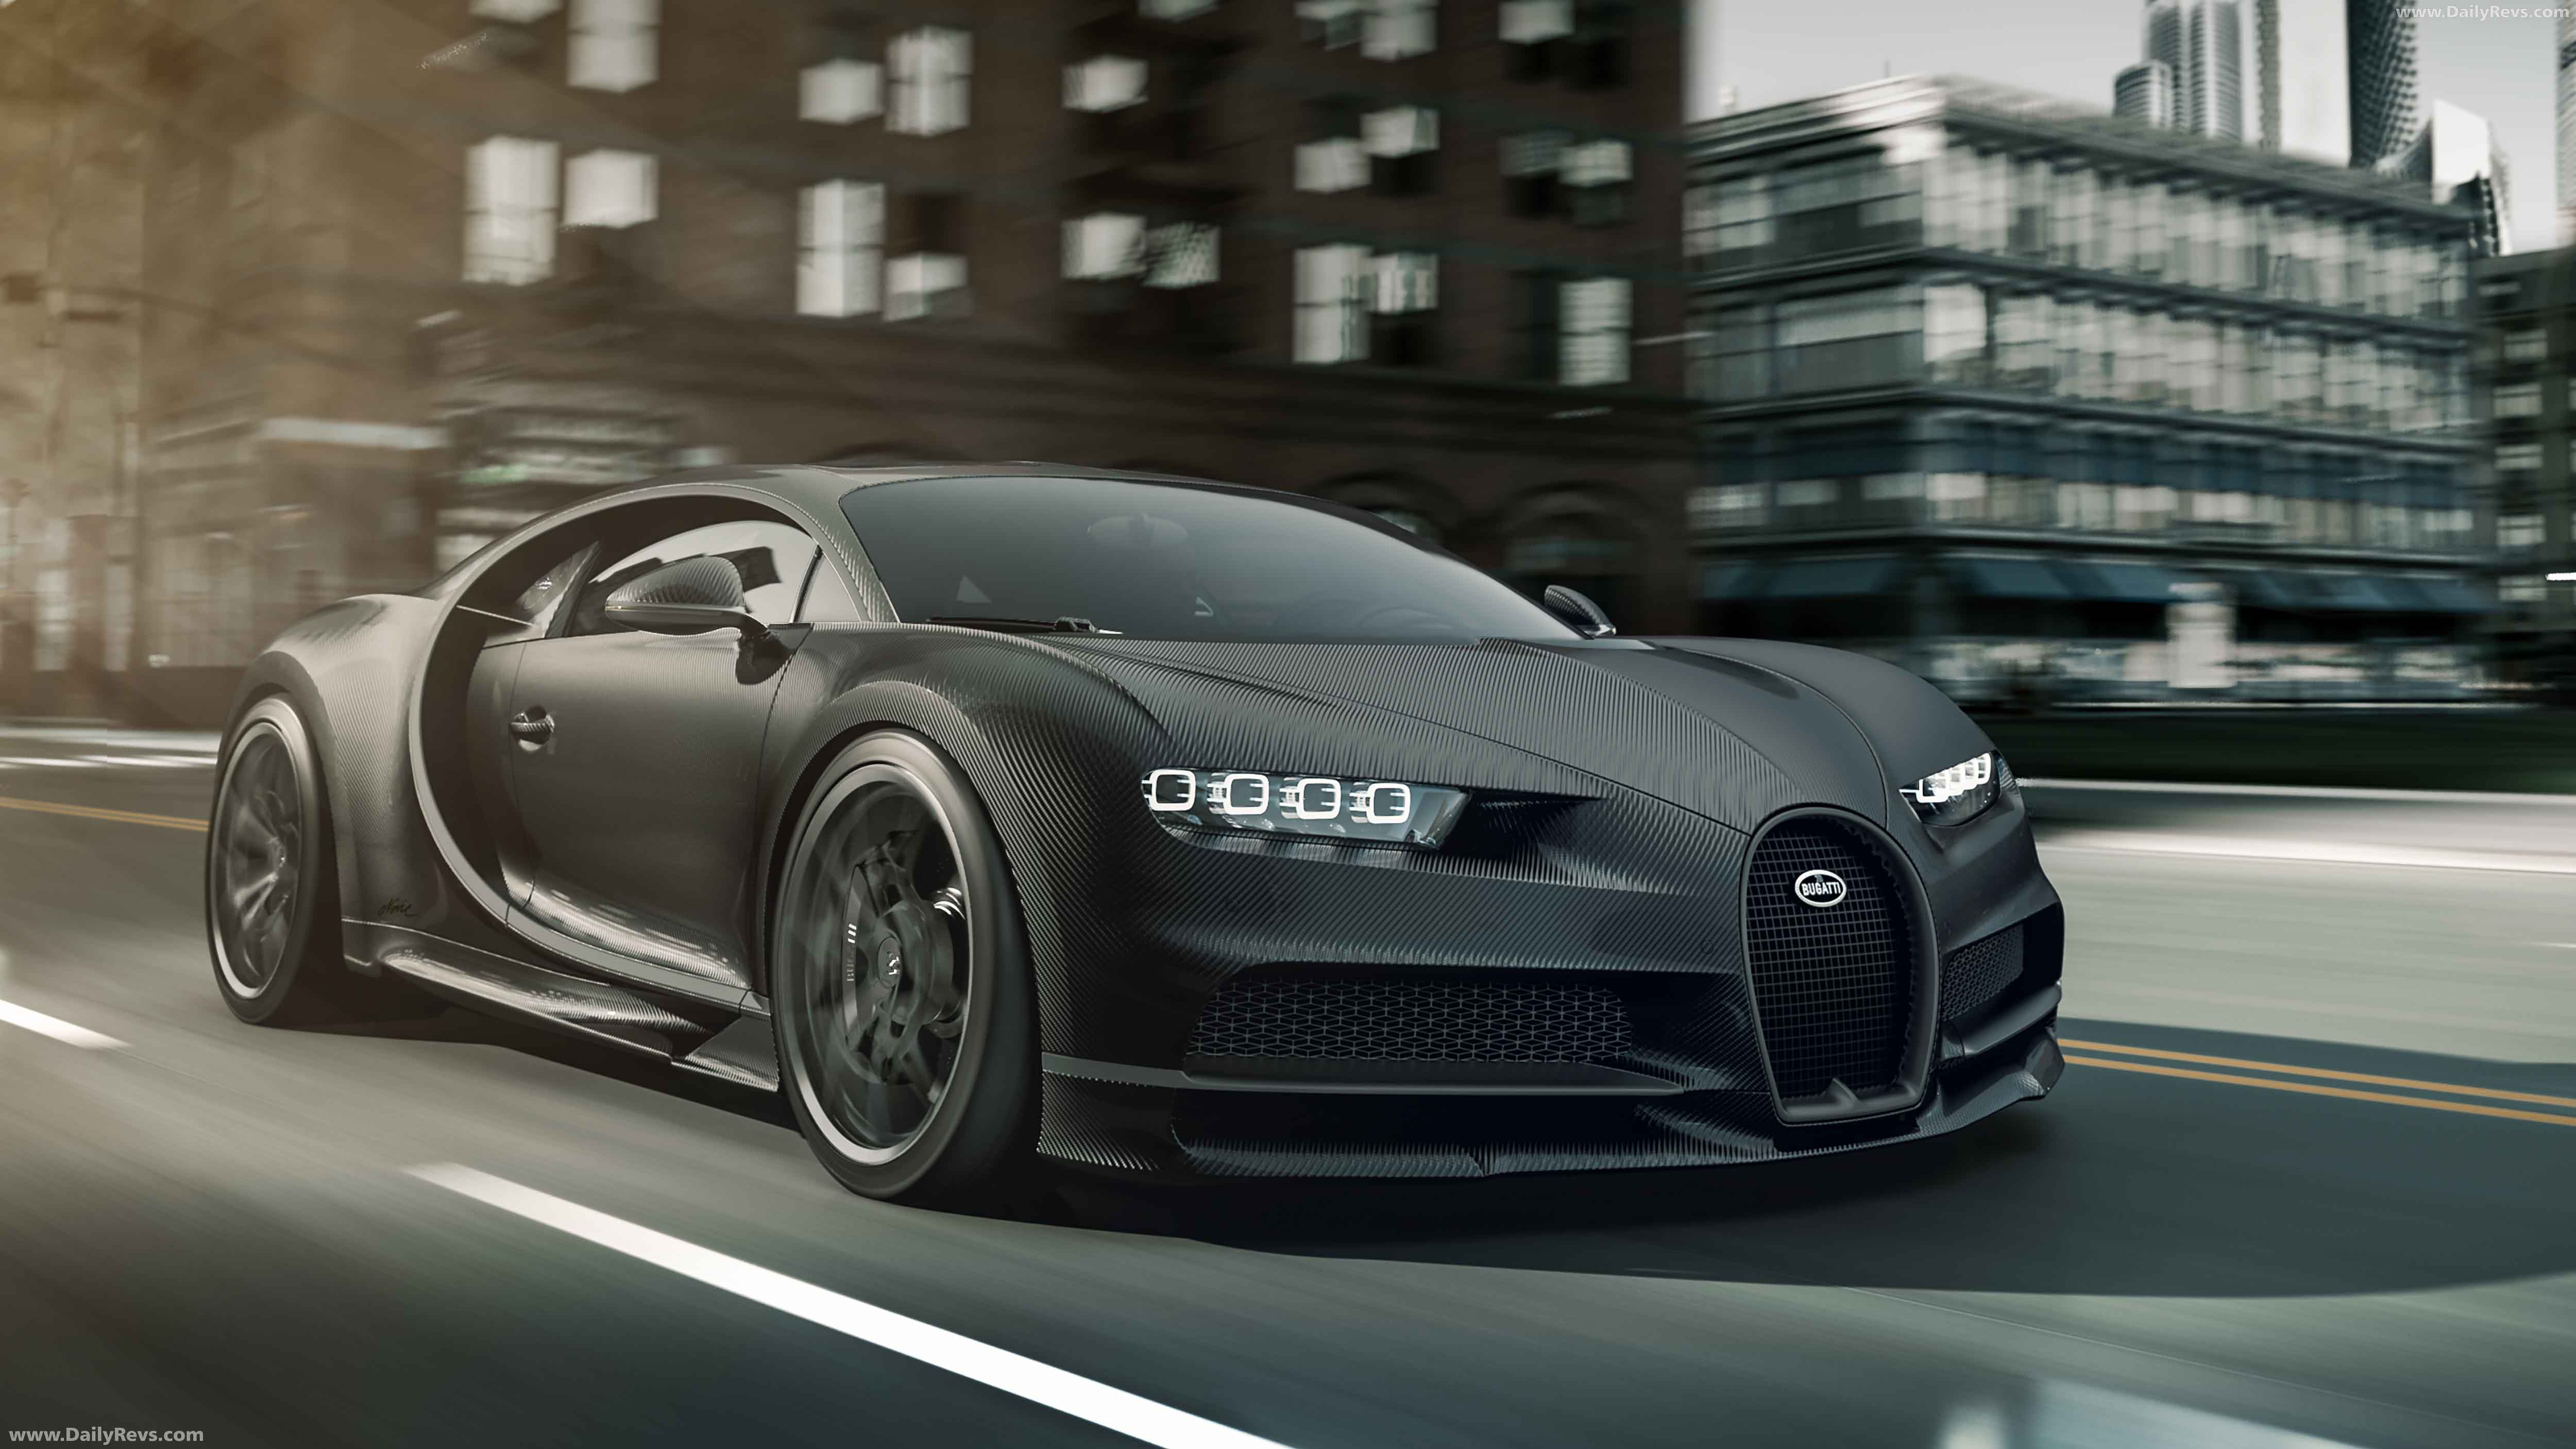 2020 Bugatti Chiron Noire Special Edition - HD Pictures, Videos, Specs & Information - Dailyrevs